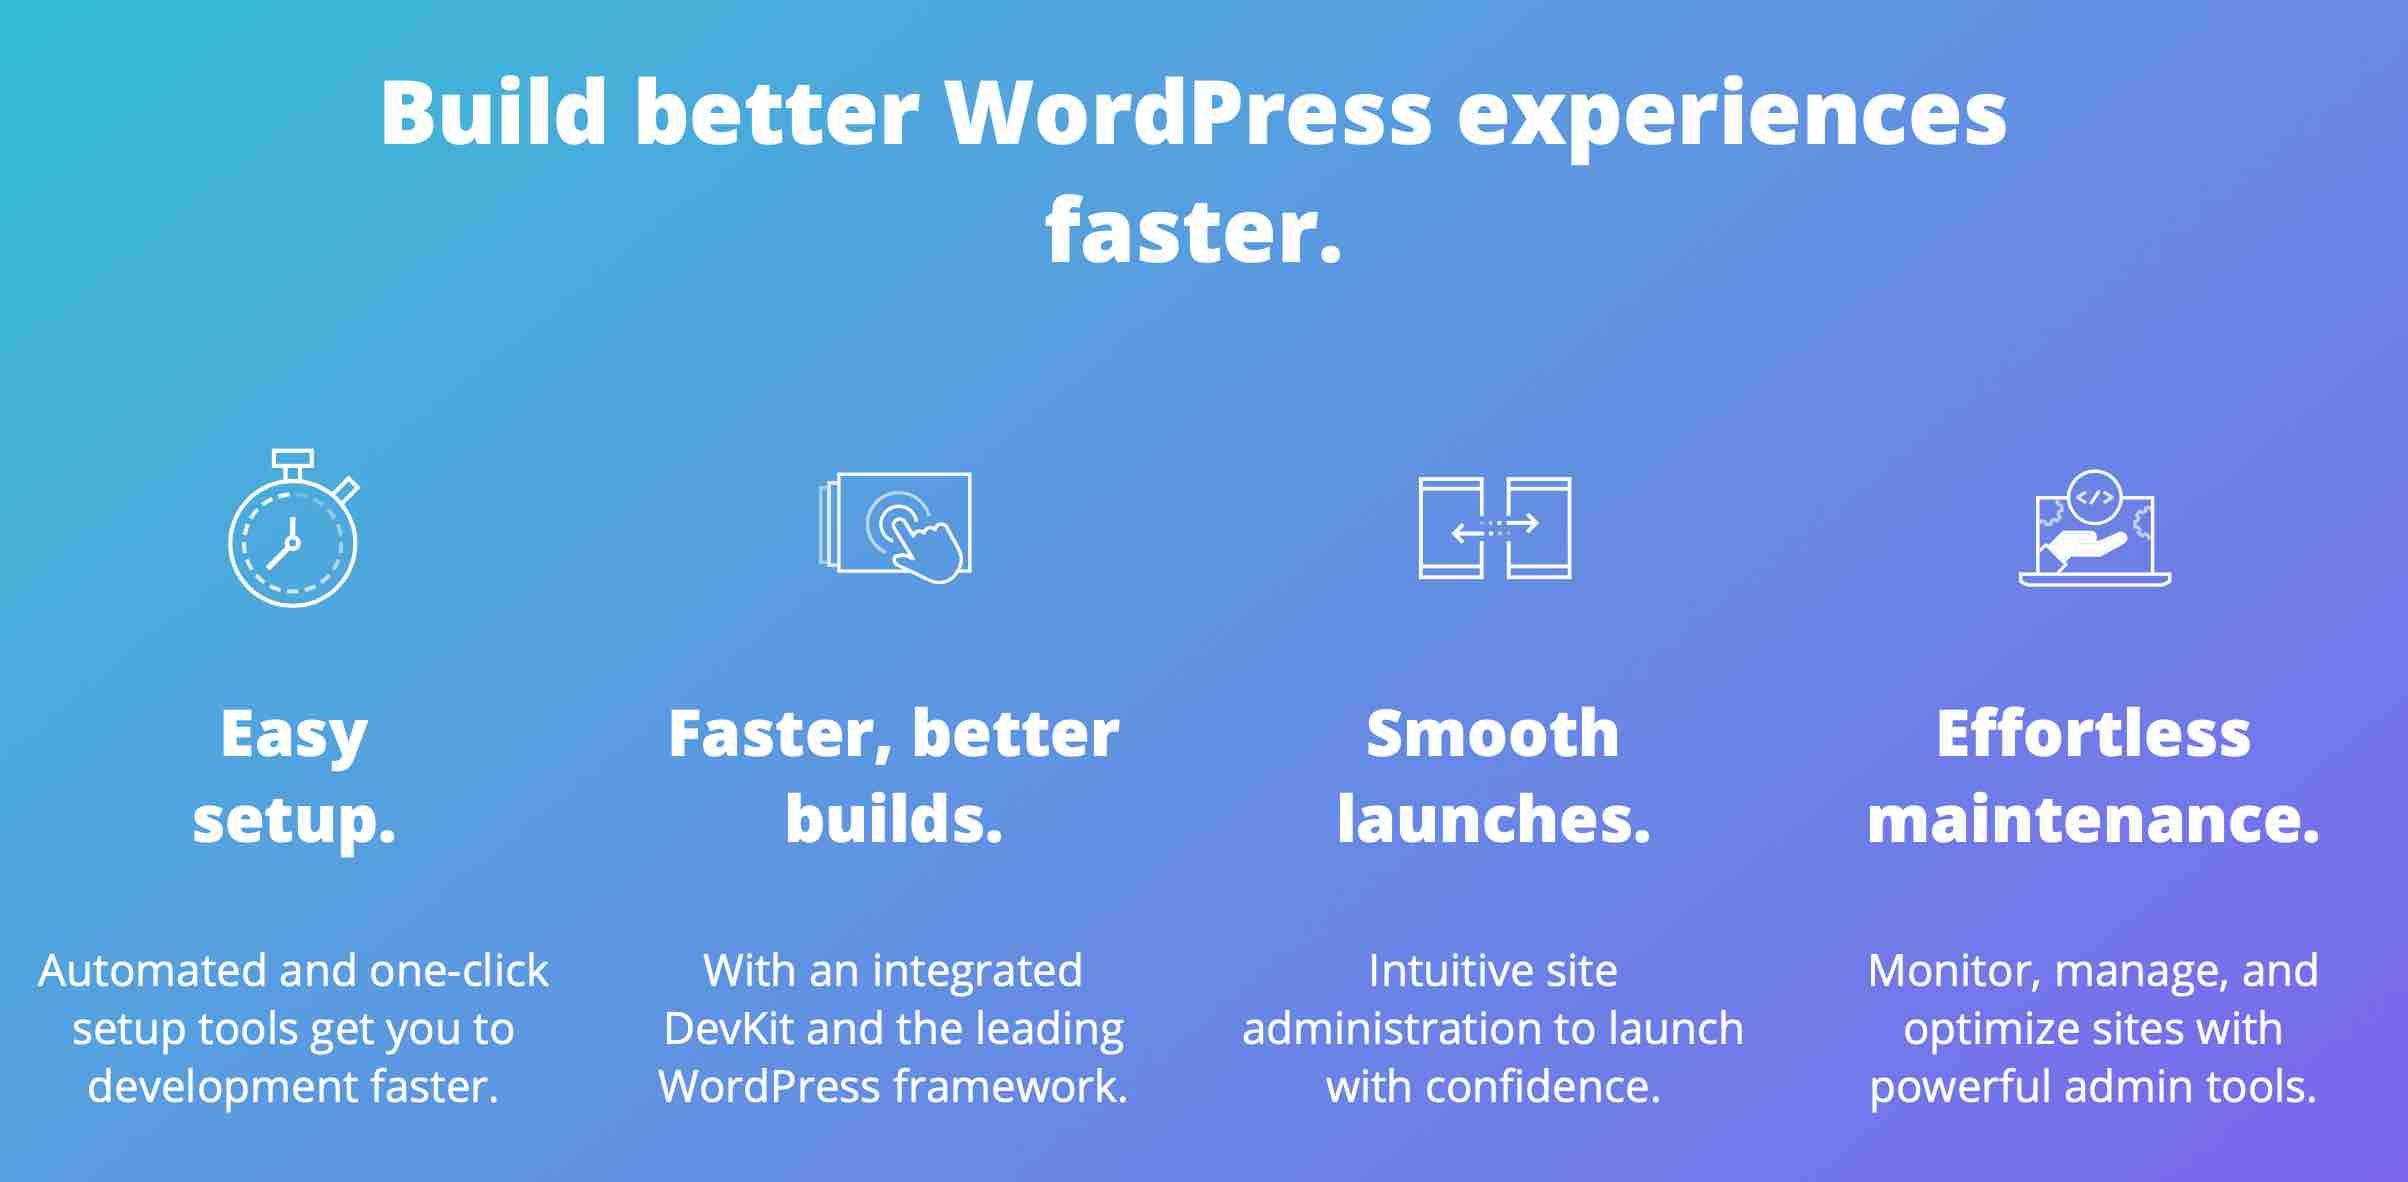 Build better WordPress experiences faster with WP Engine